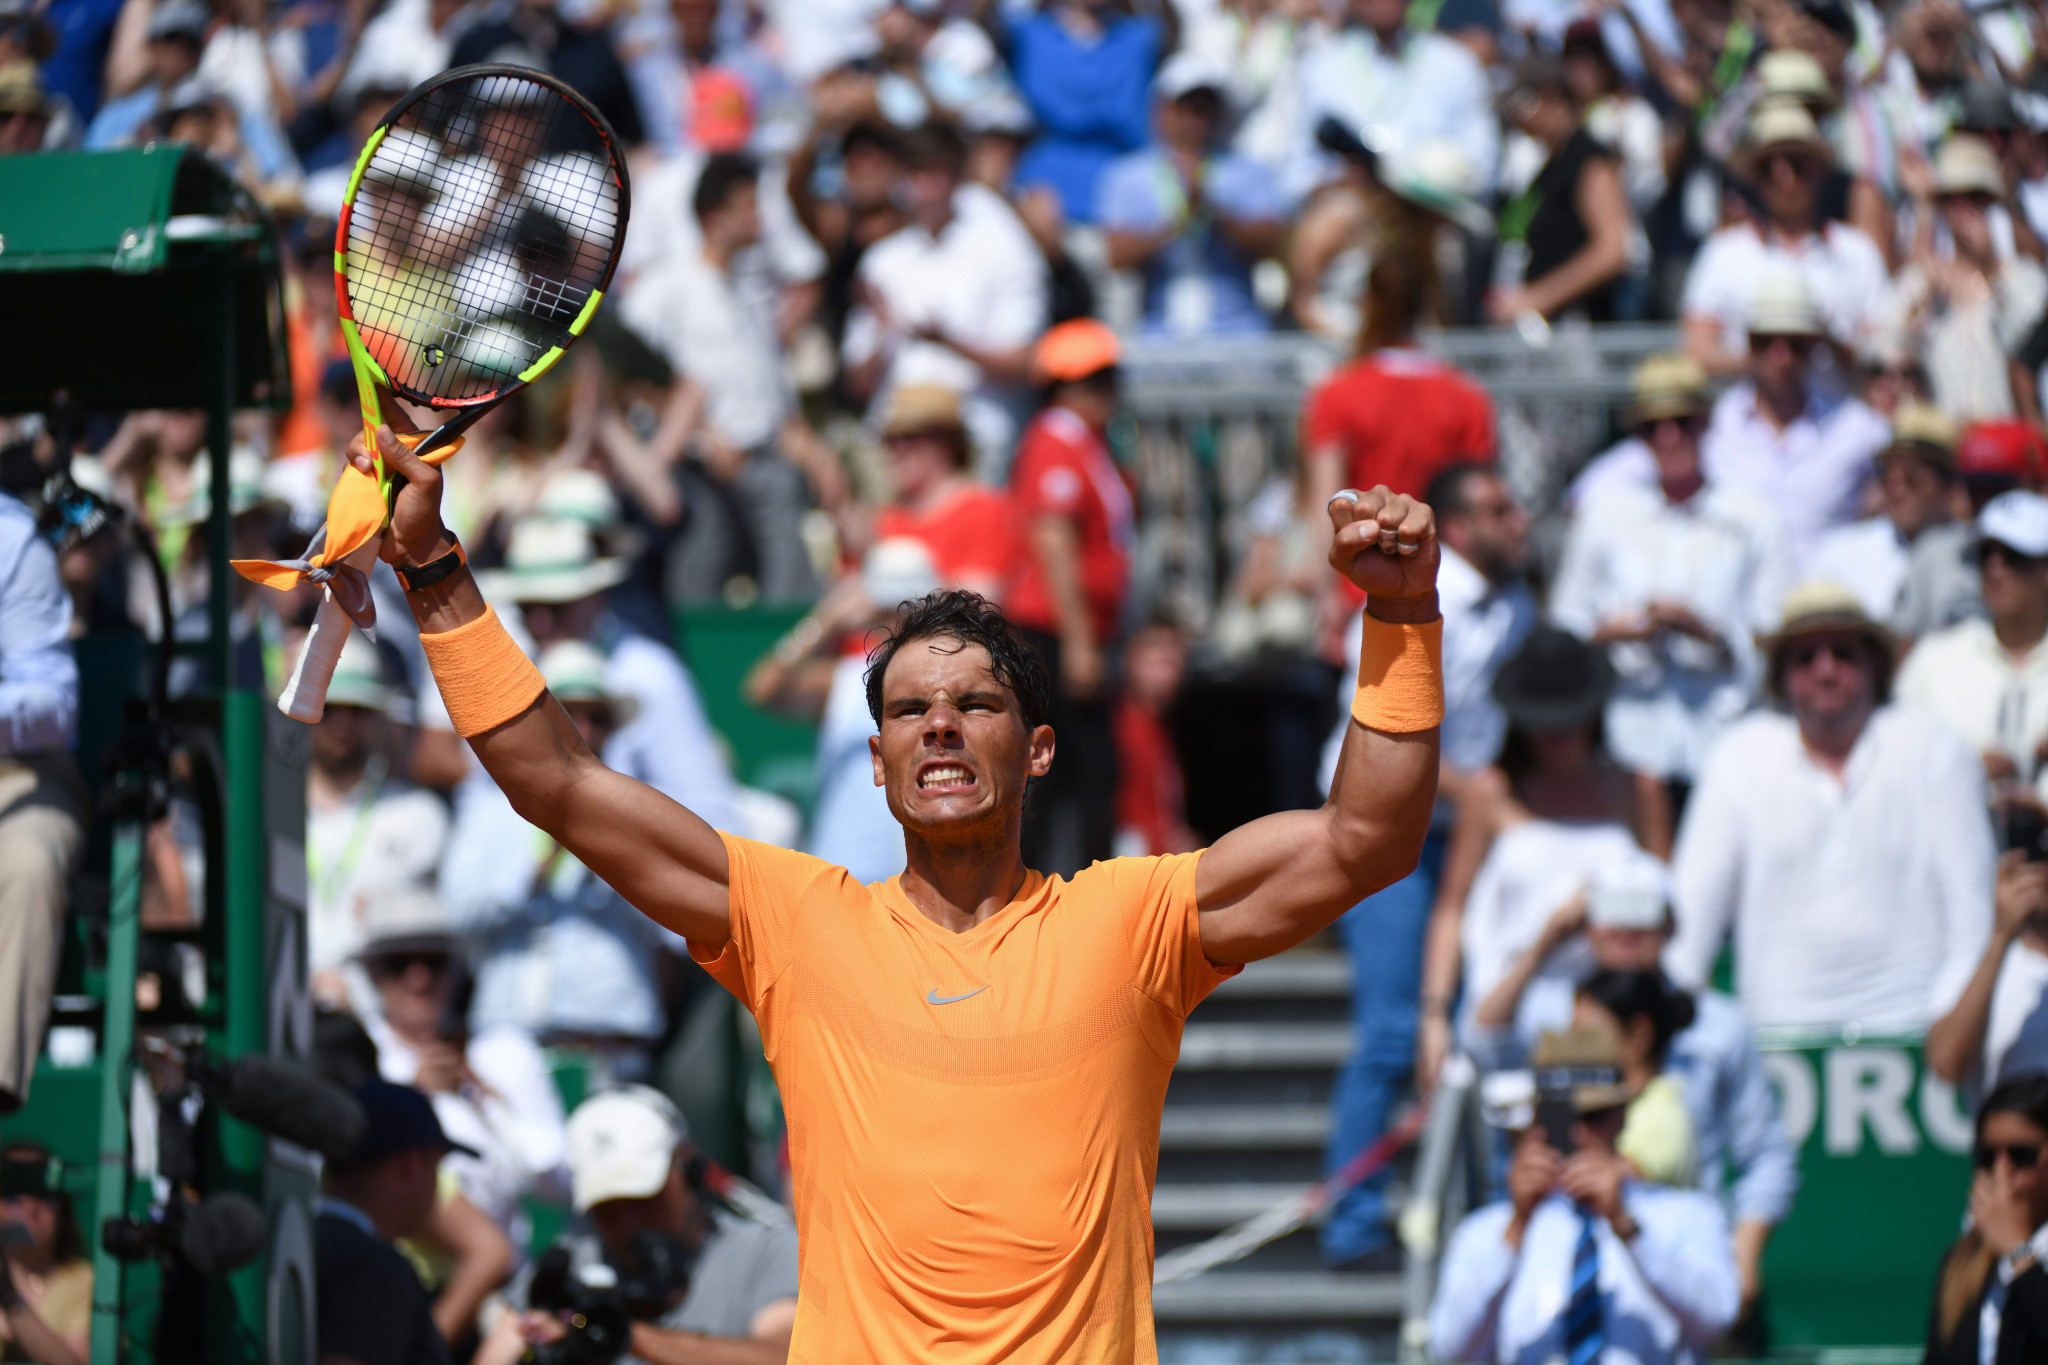 Rafael Nadal marches on towards 11th Monte Carlo crown